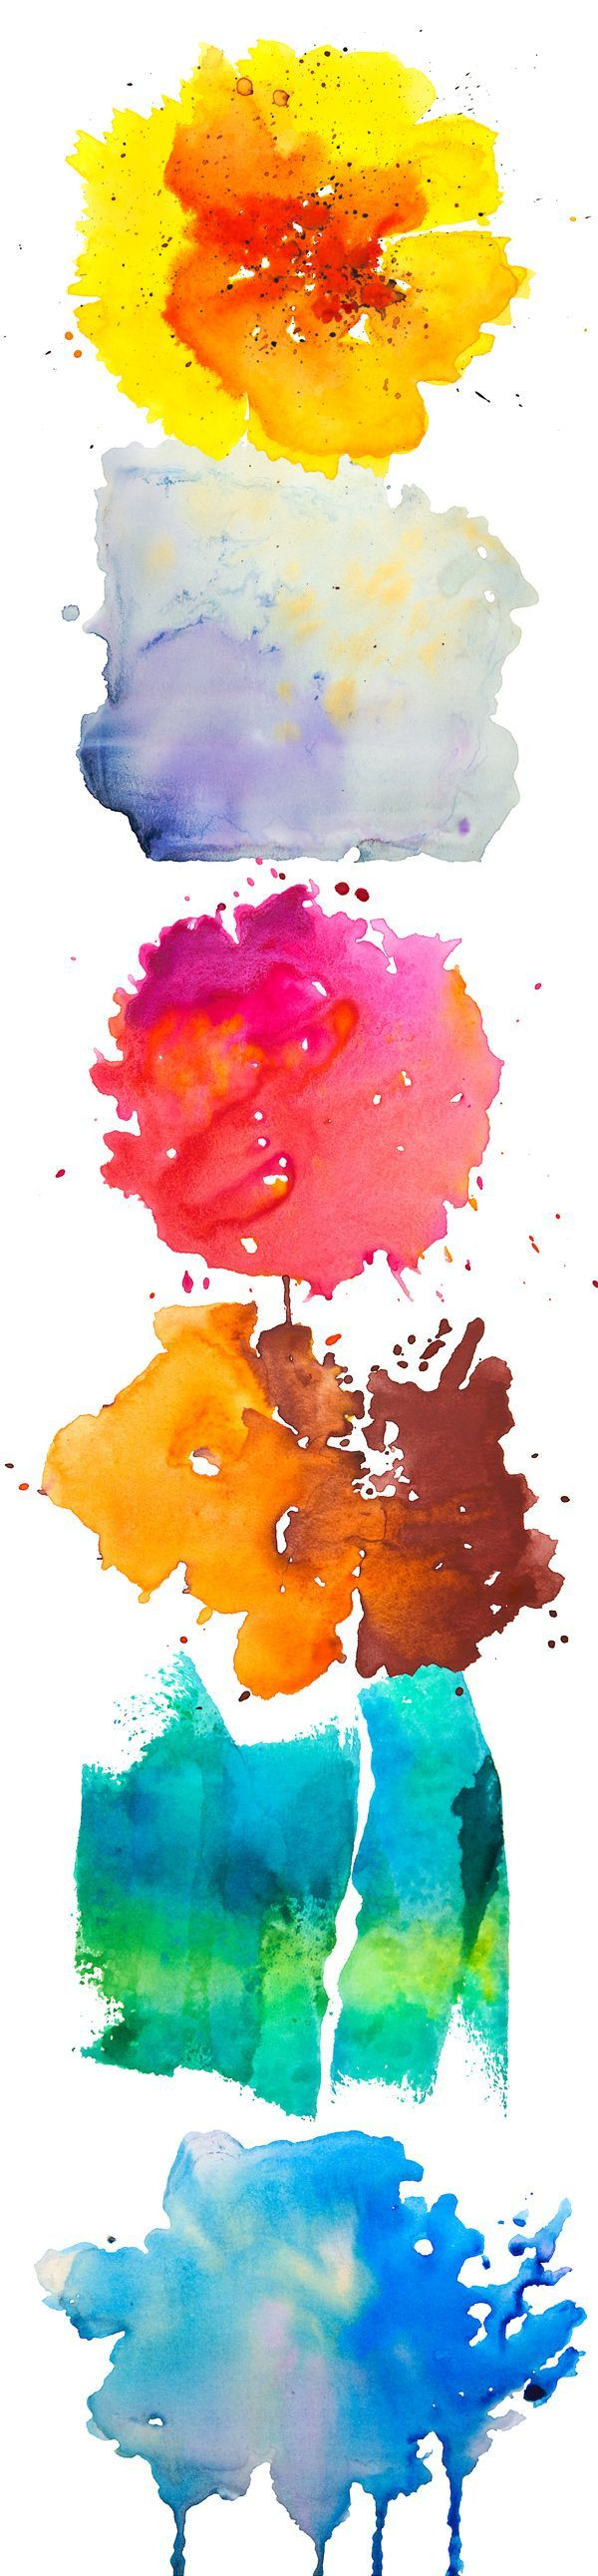 You're looking for Free Watercolor Textures to add some splashy details to your designs? Today we bring you a set of 6 free watercolor textures in vibrant hues.